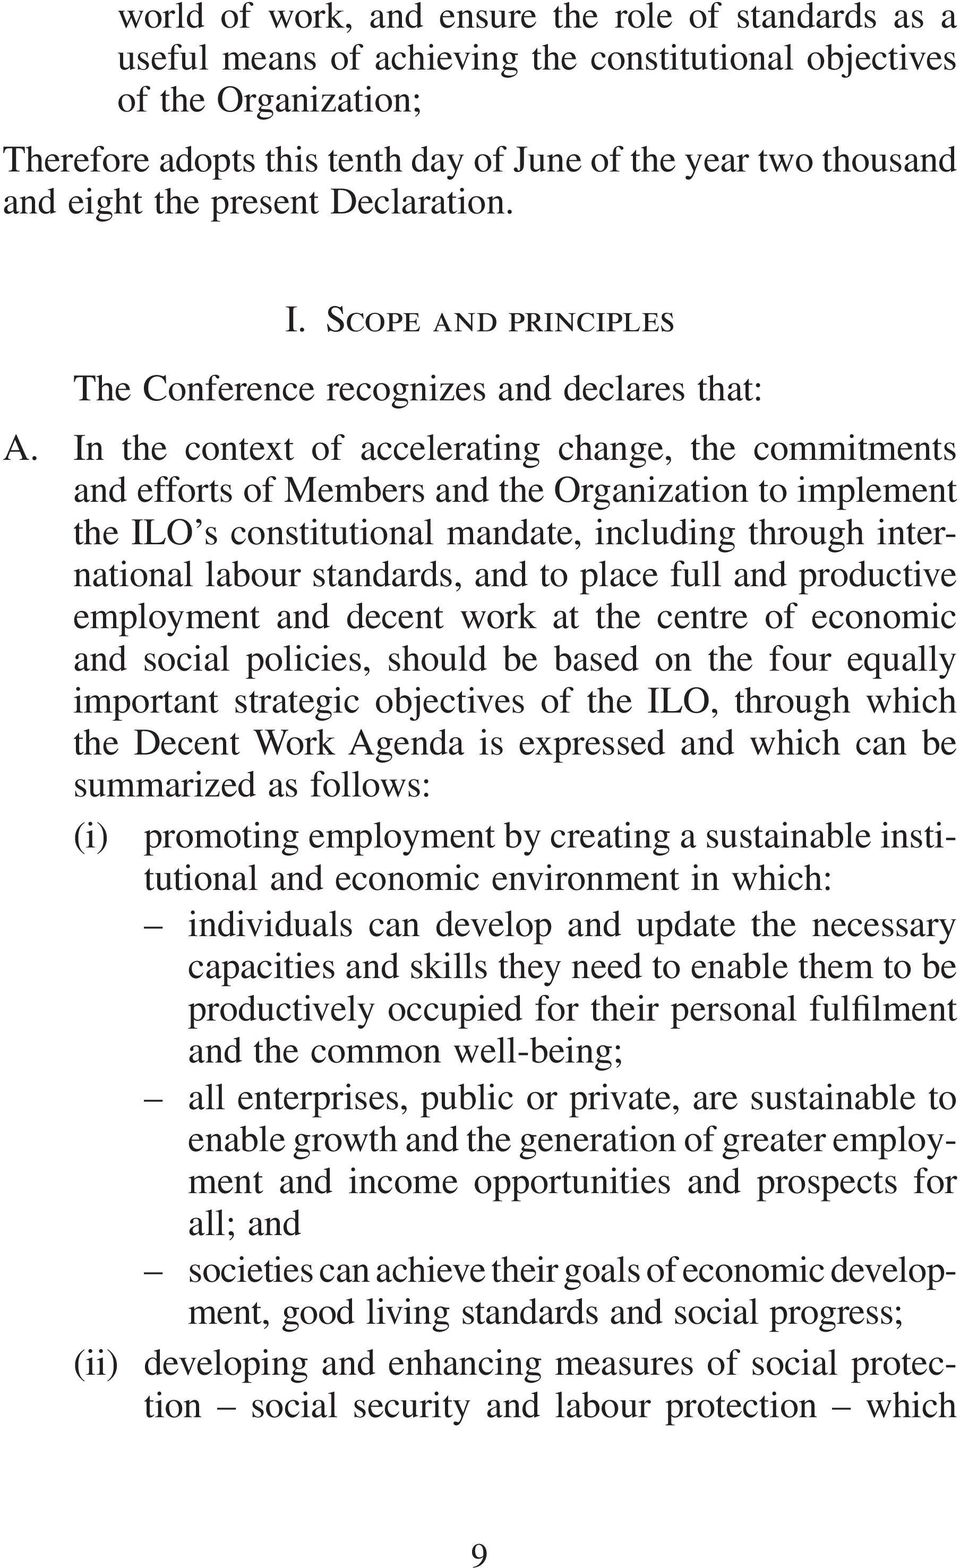 In the context of accelerating change, the commitments and efforts of Members and the Organization to implement the ILO s constitutional mandate, including through international labour standards, and